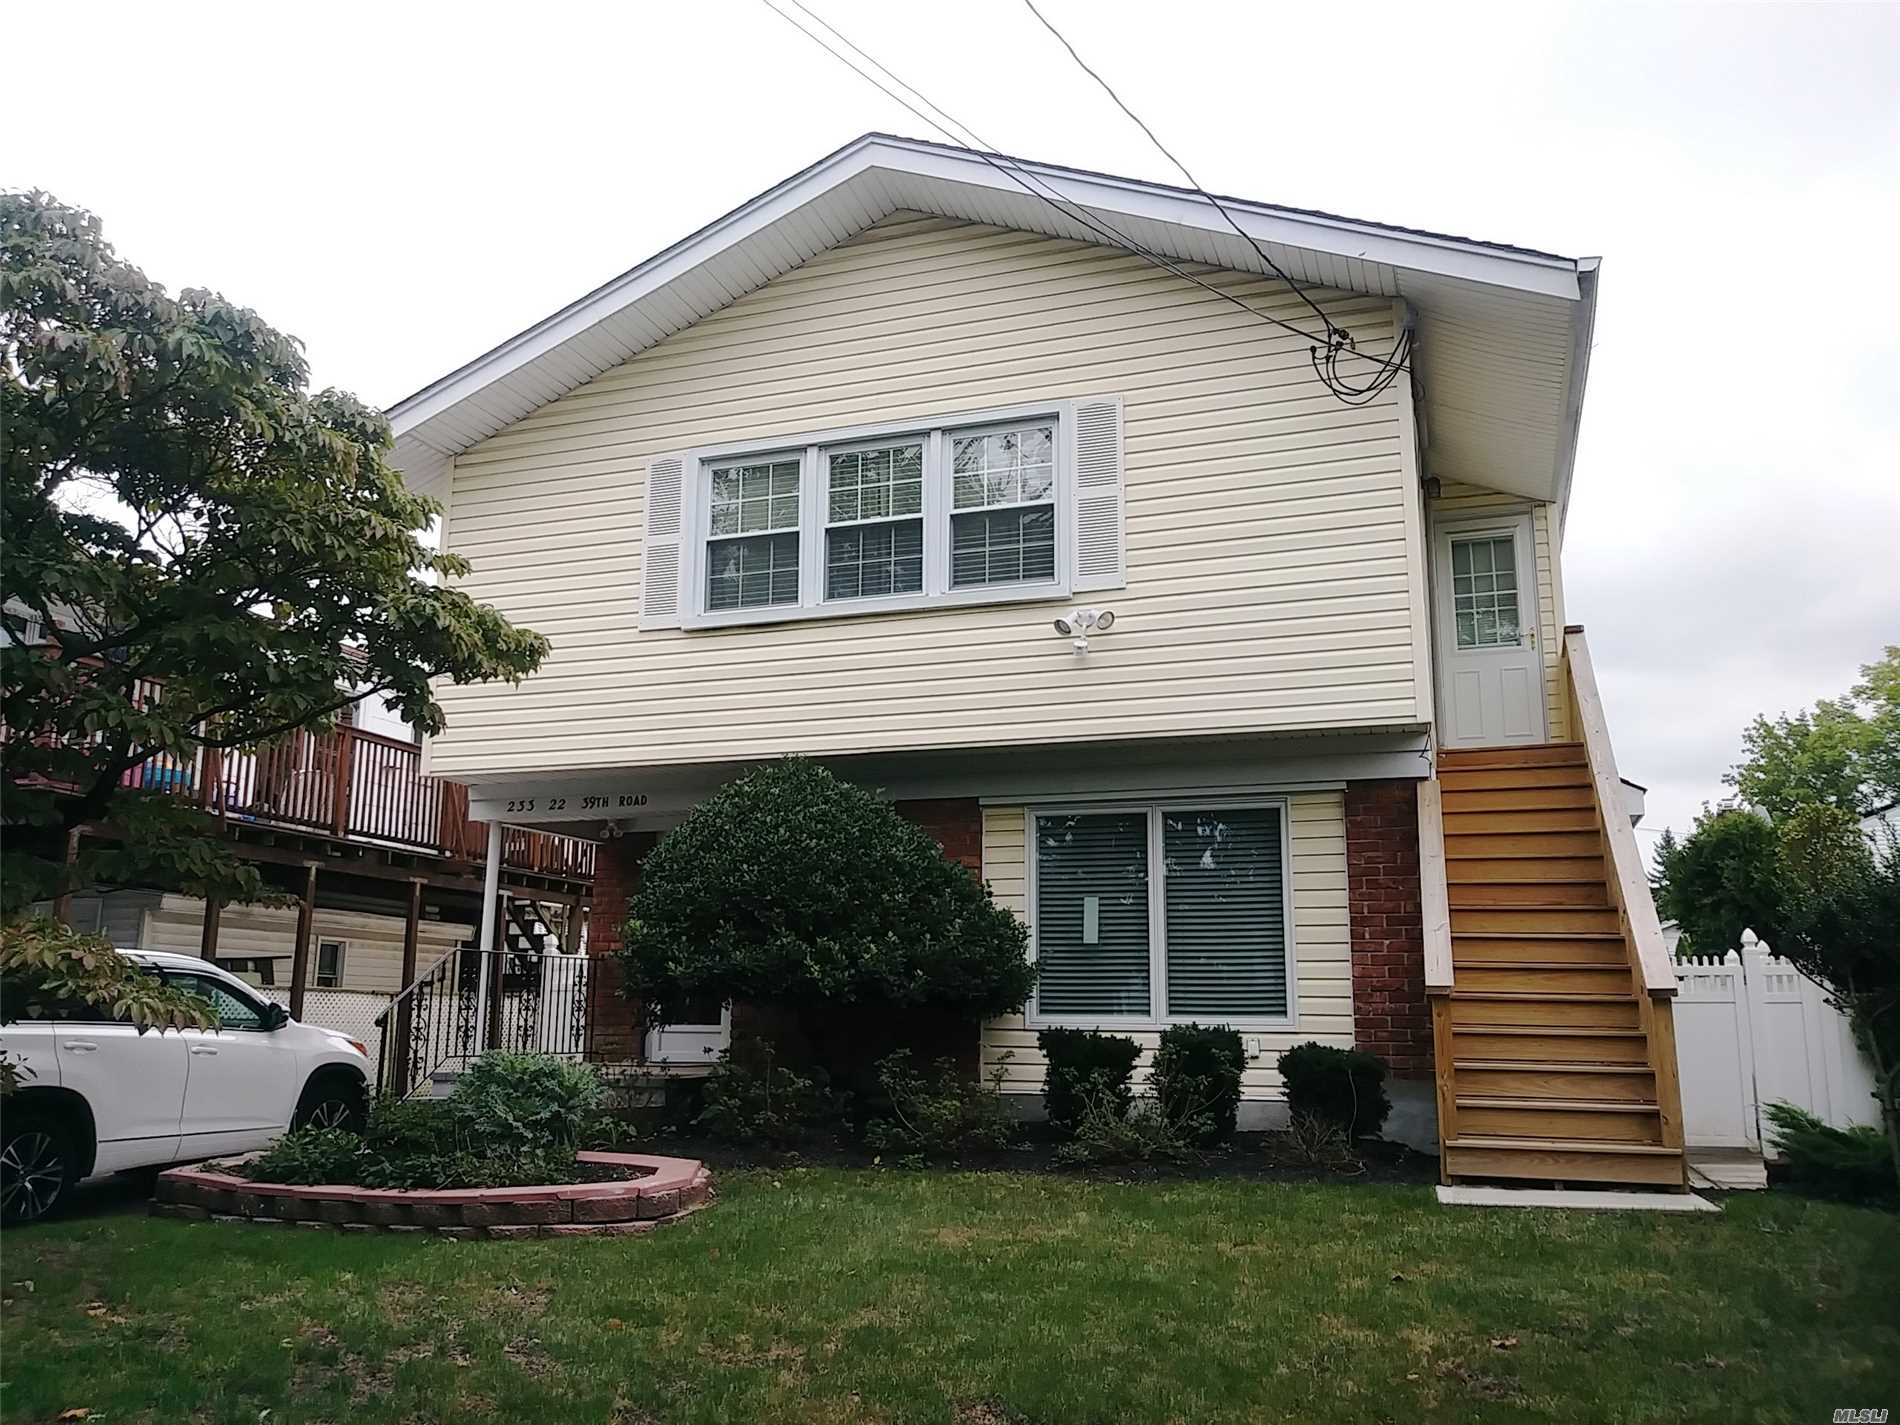 Beautiful 2 Story, 3 Bedroom, 3 Full Bath Home In Out Skirts Of Douglaston Manor. Features A Spacious Eat-In-Kitchen With Granite Counter Tops, Wall Oven And Cooktop Installed In 2014. All Bath Floors & Showers Are Porcelain Or Ceramic Tile. Main Bathroom Has Large Shower & Whirlpool Tub. Teak Hardwood Floors Throughout 2nd Floor. Central Air, Newer Paver Stone Driveway & Exterior Stairs. Above Ground Pool Installed 2014.